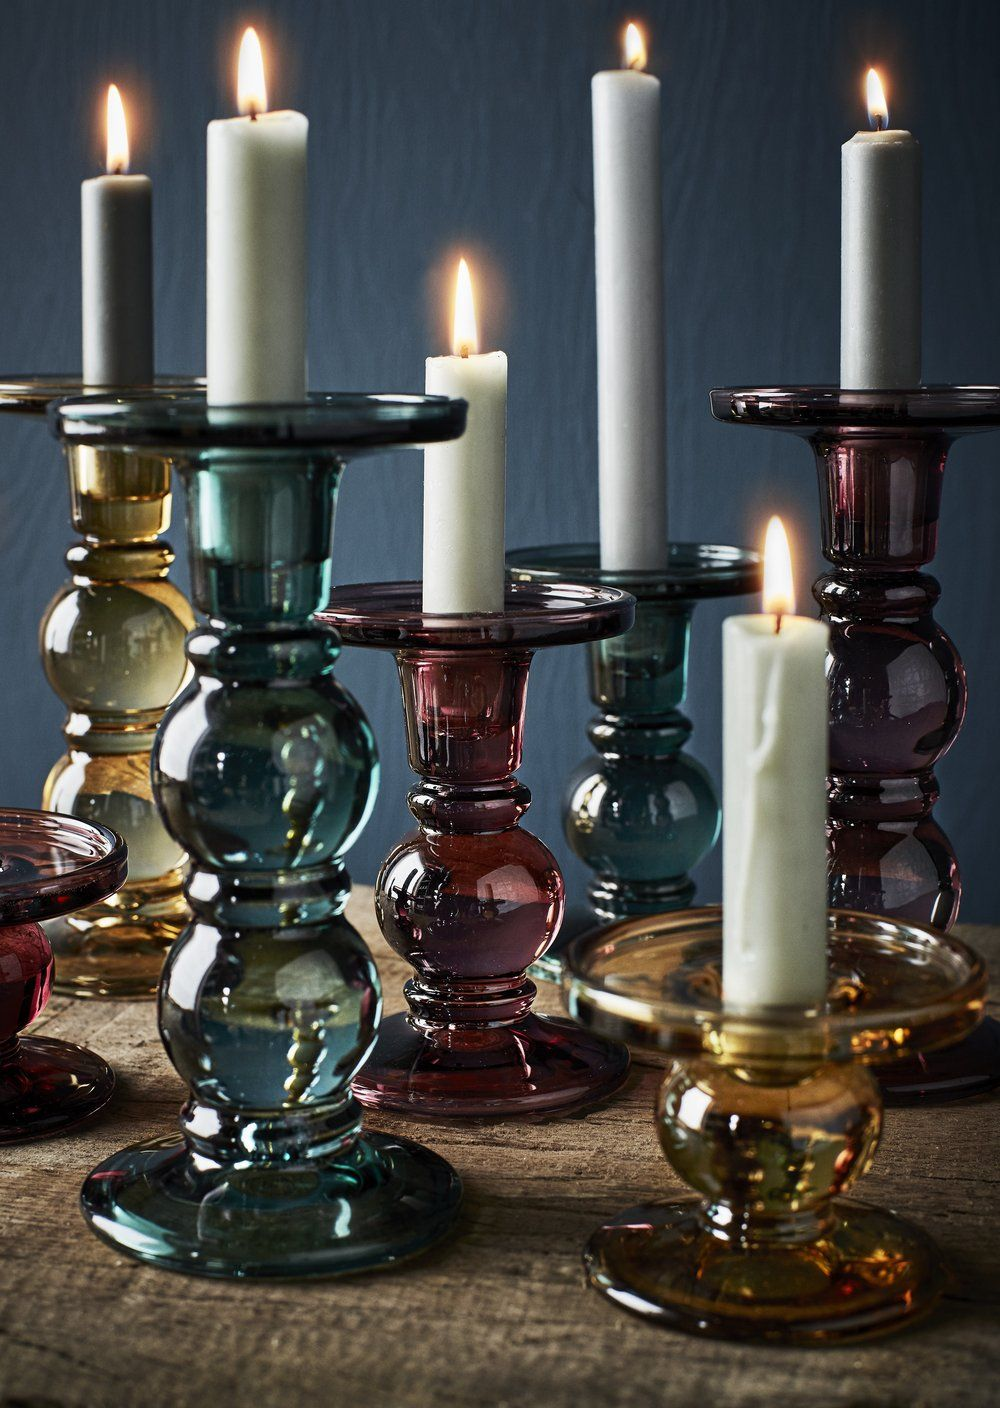 Coloured Glass Candle Holders Large Candle Holders Glass Candlesticks Glass Candle Holders